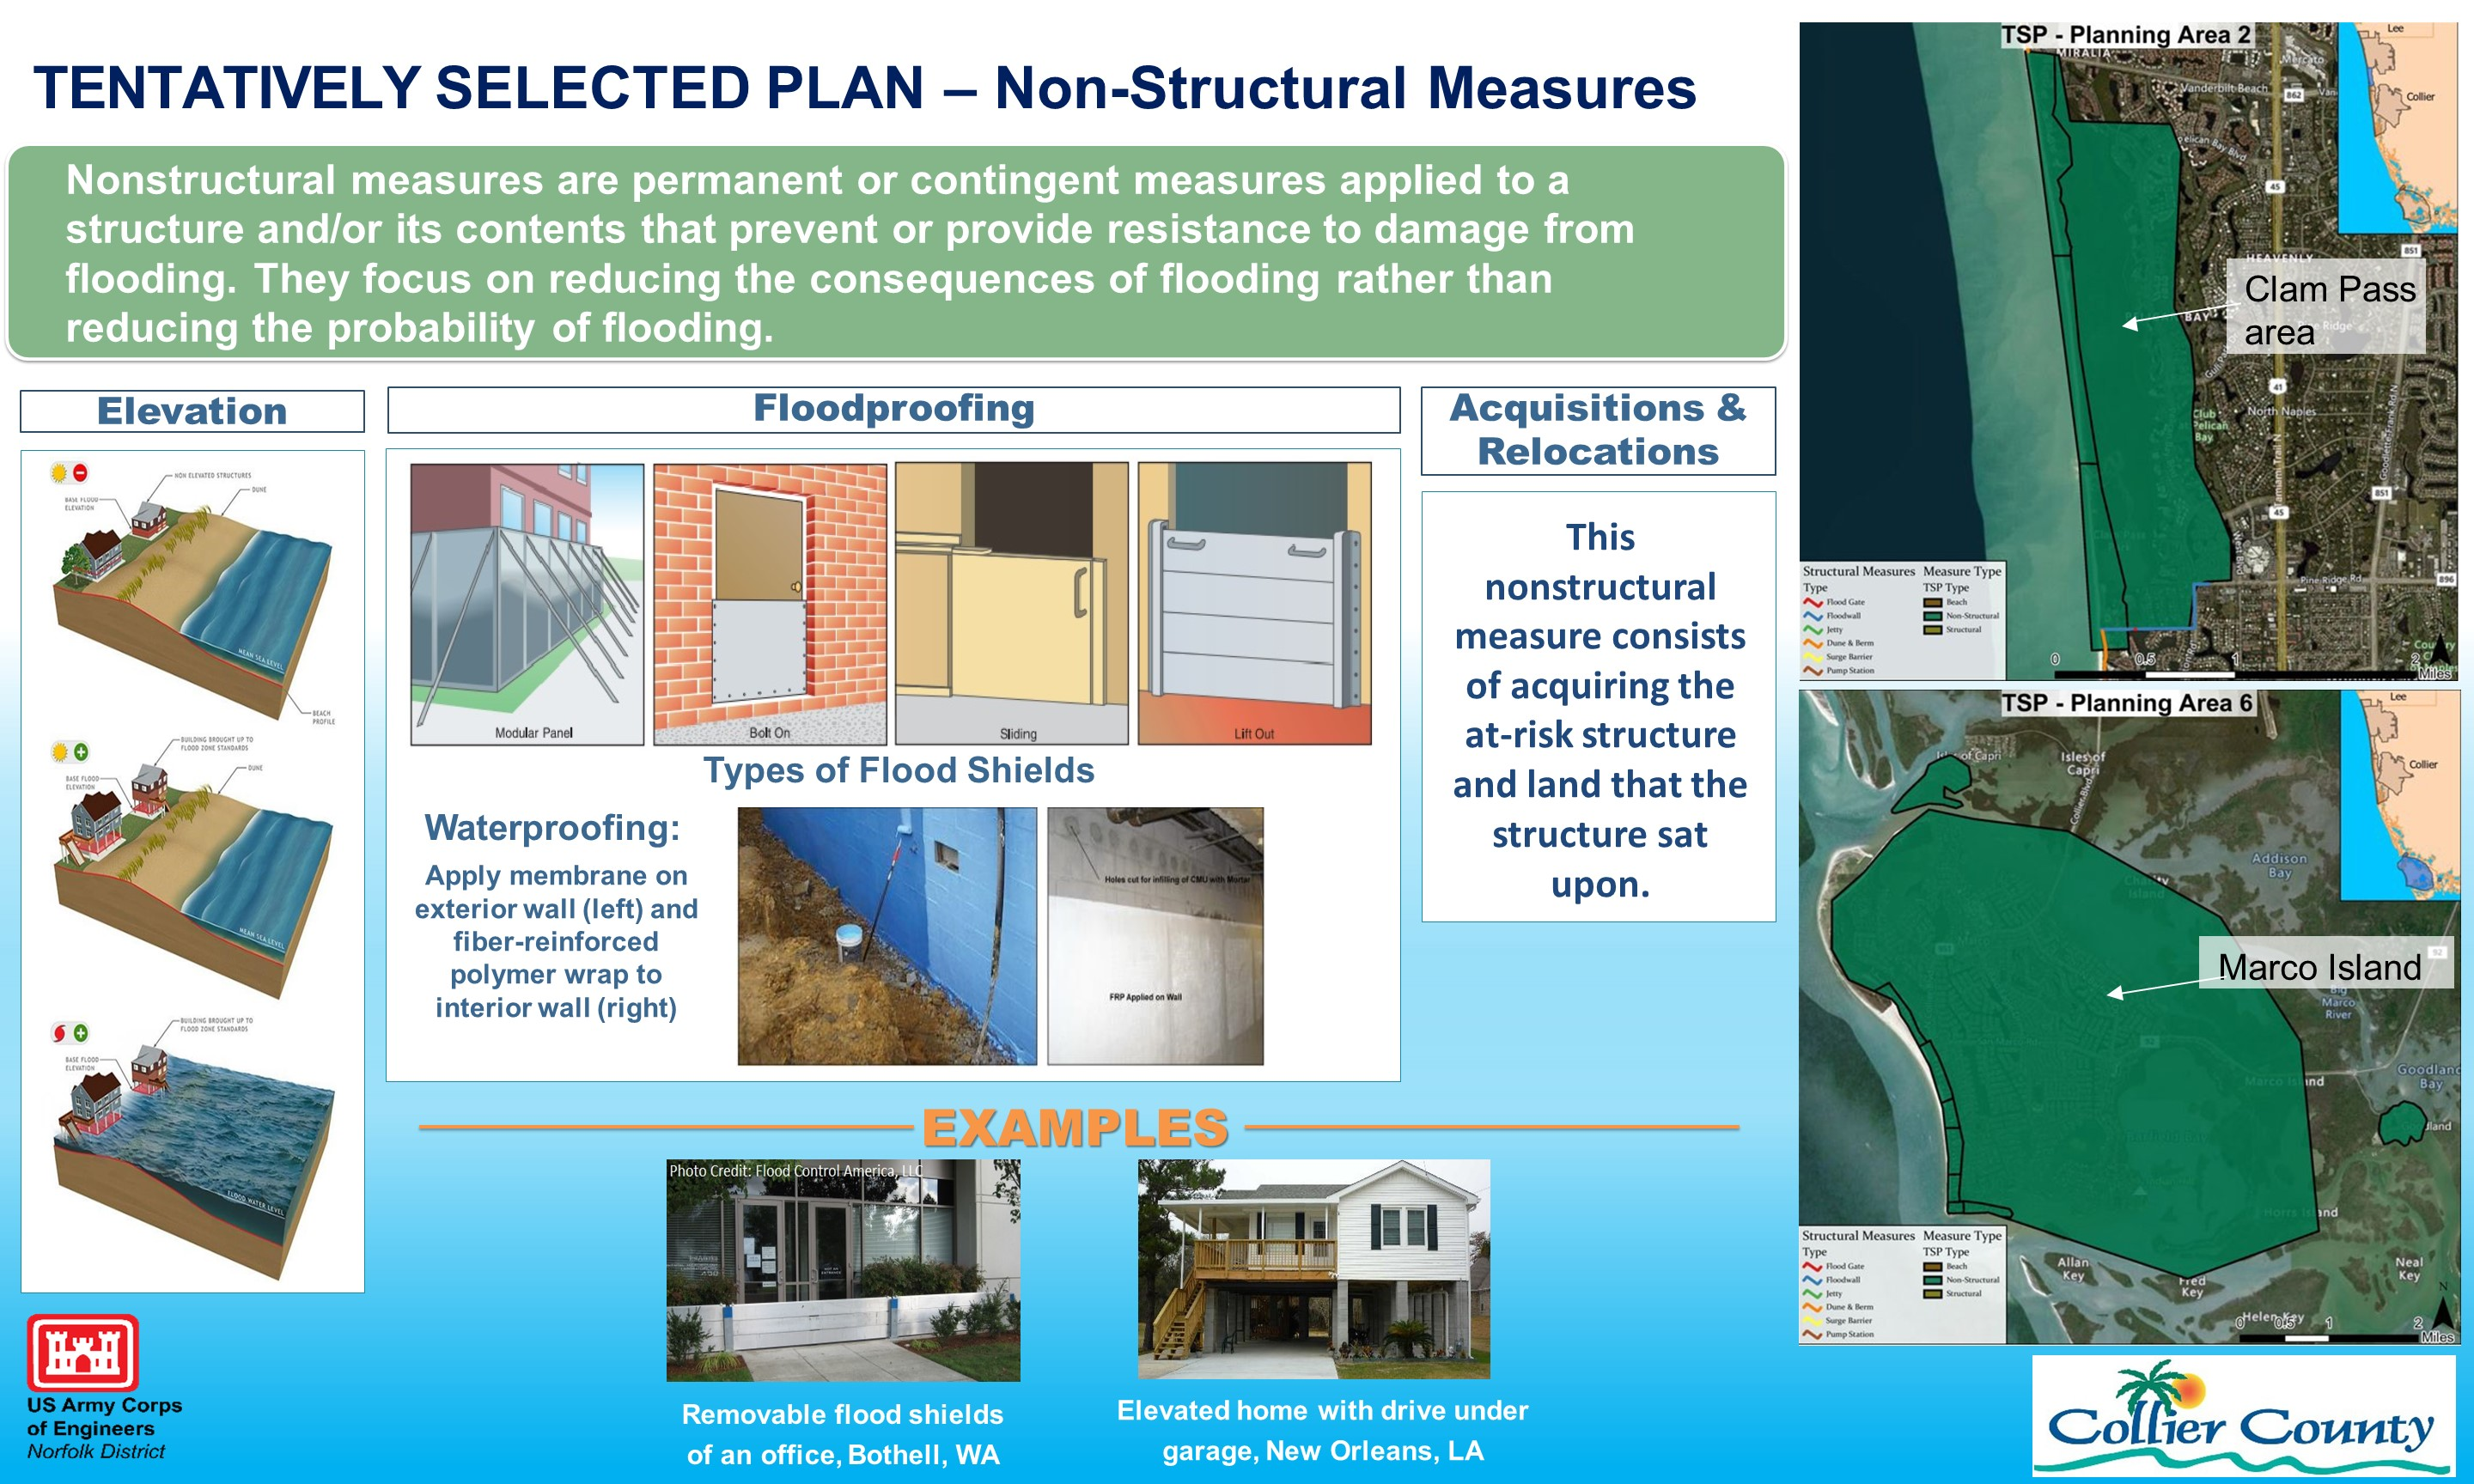 Collier County CSRM Tentatively Selected Plan Non-Structural Measures